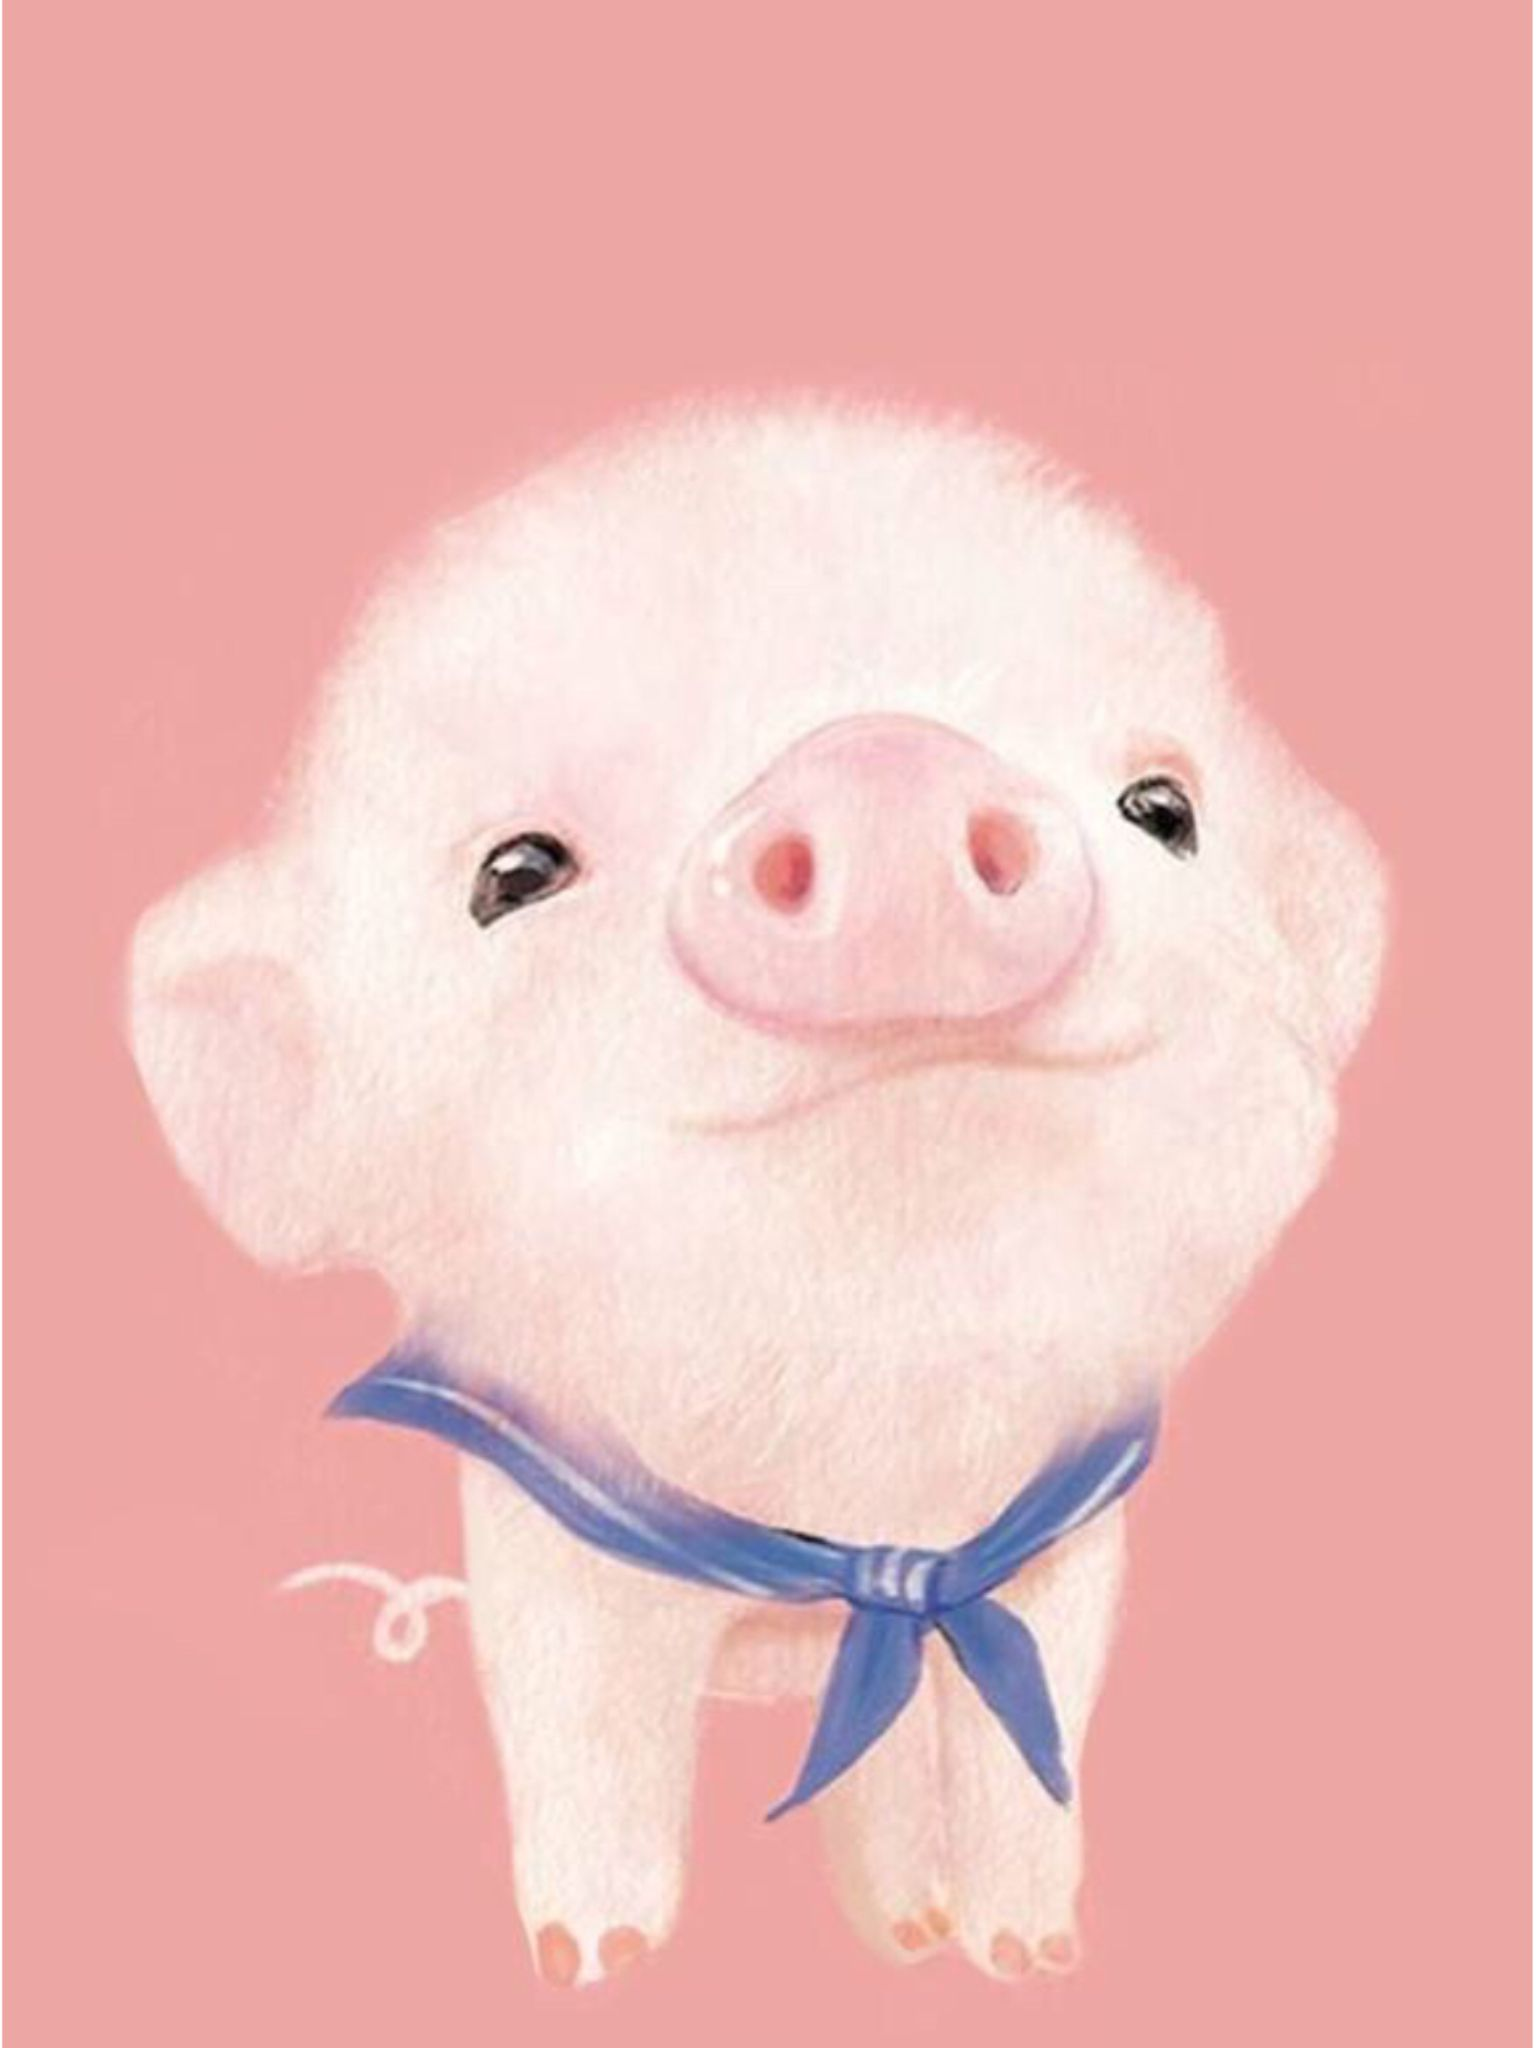 Cute pig wallpaper | Wallpapers | Pinterest | Pig ...